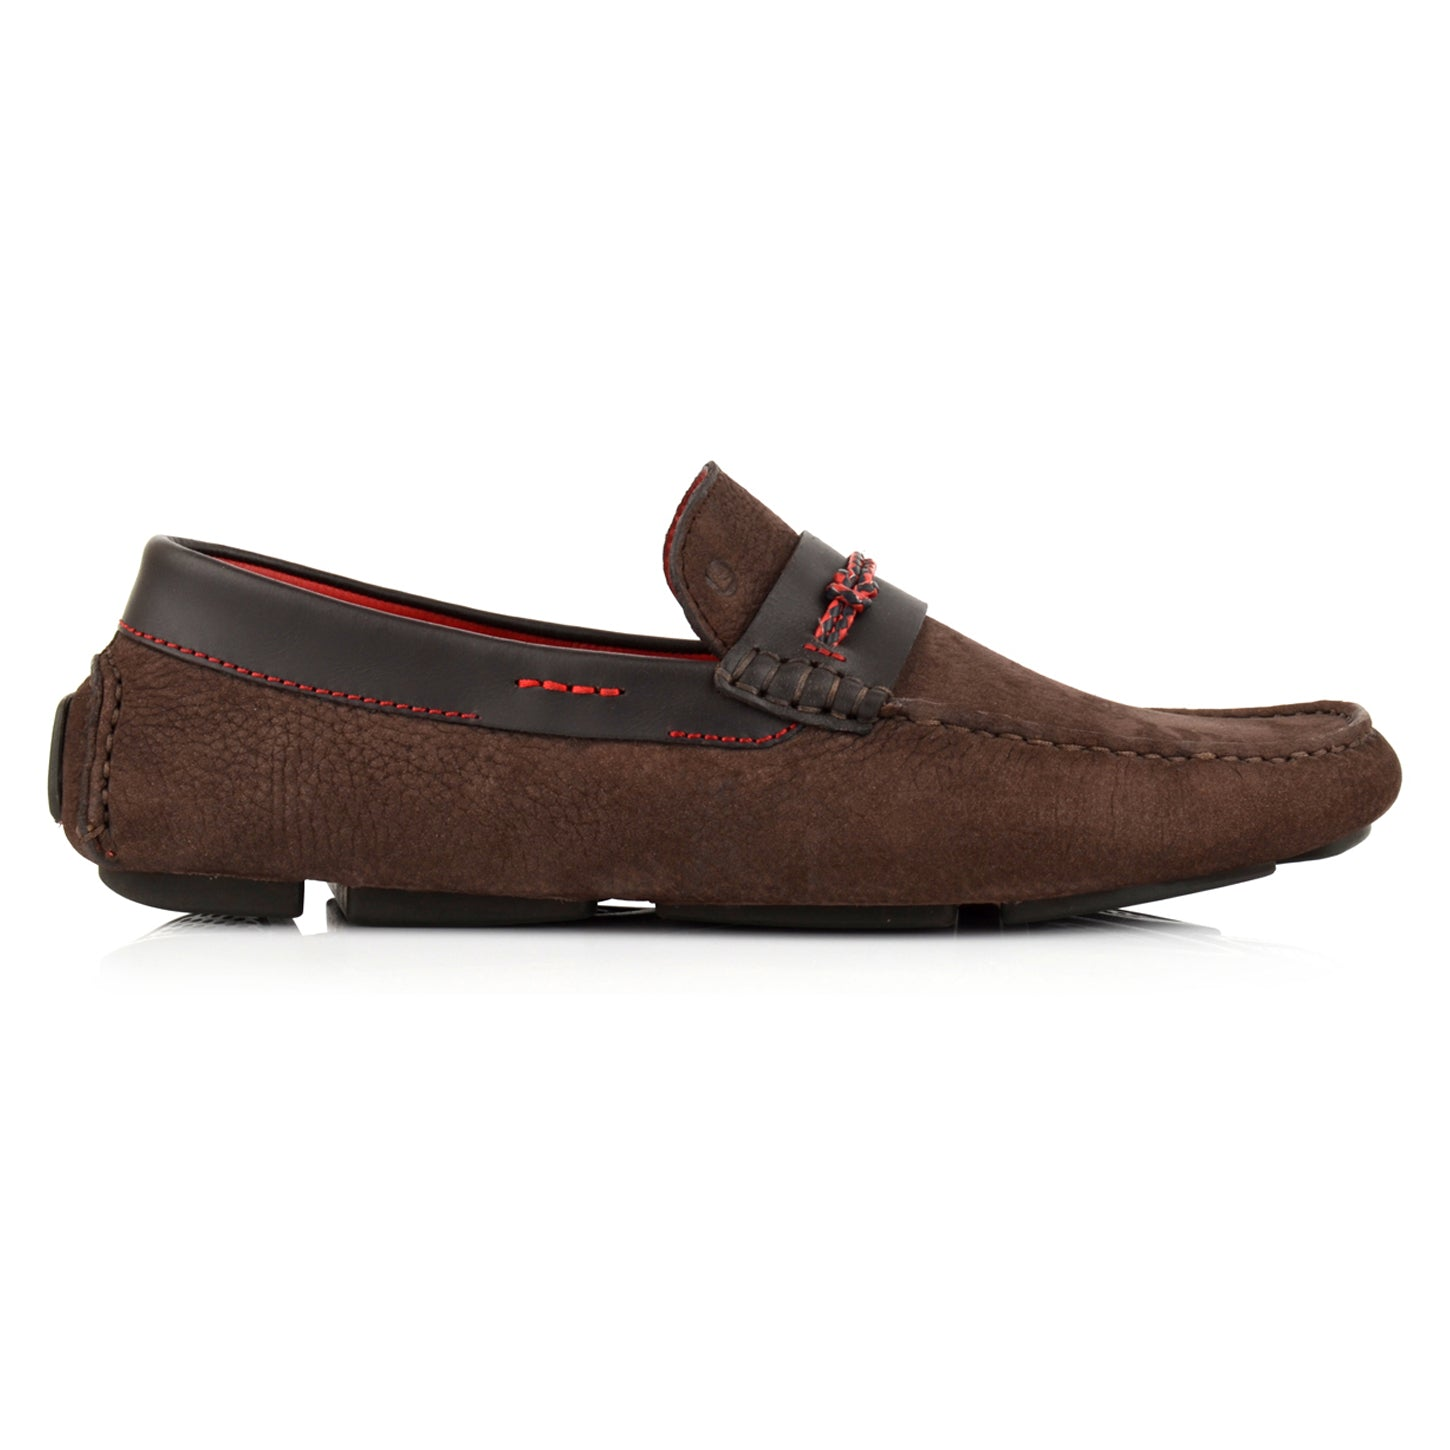 LM062 - Language Chief Men's Casuals Dark Brown Drivers